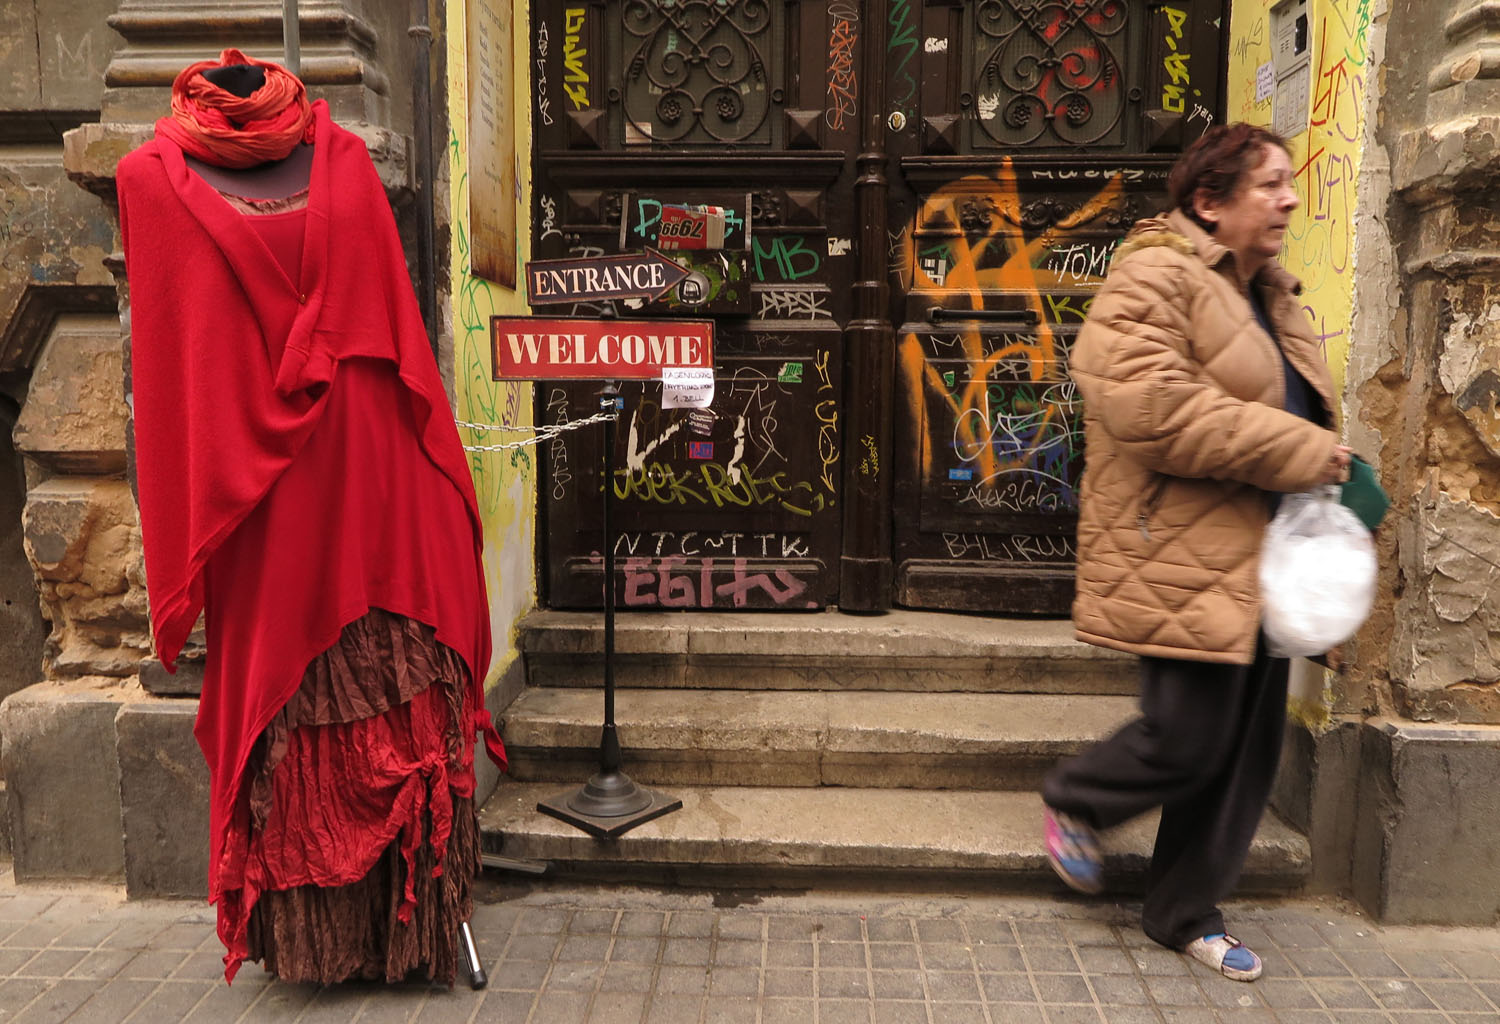 Hungary-Budapest-Street-Scenes-Dress-Shop